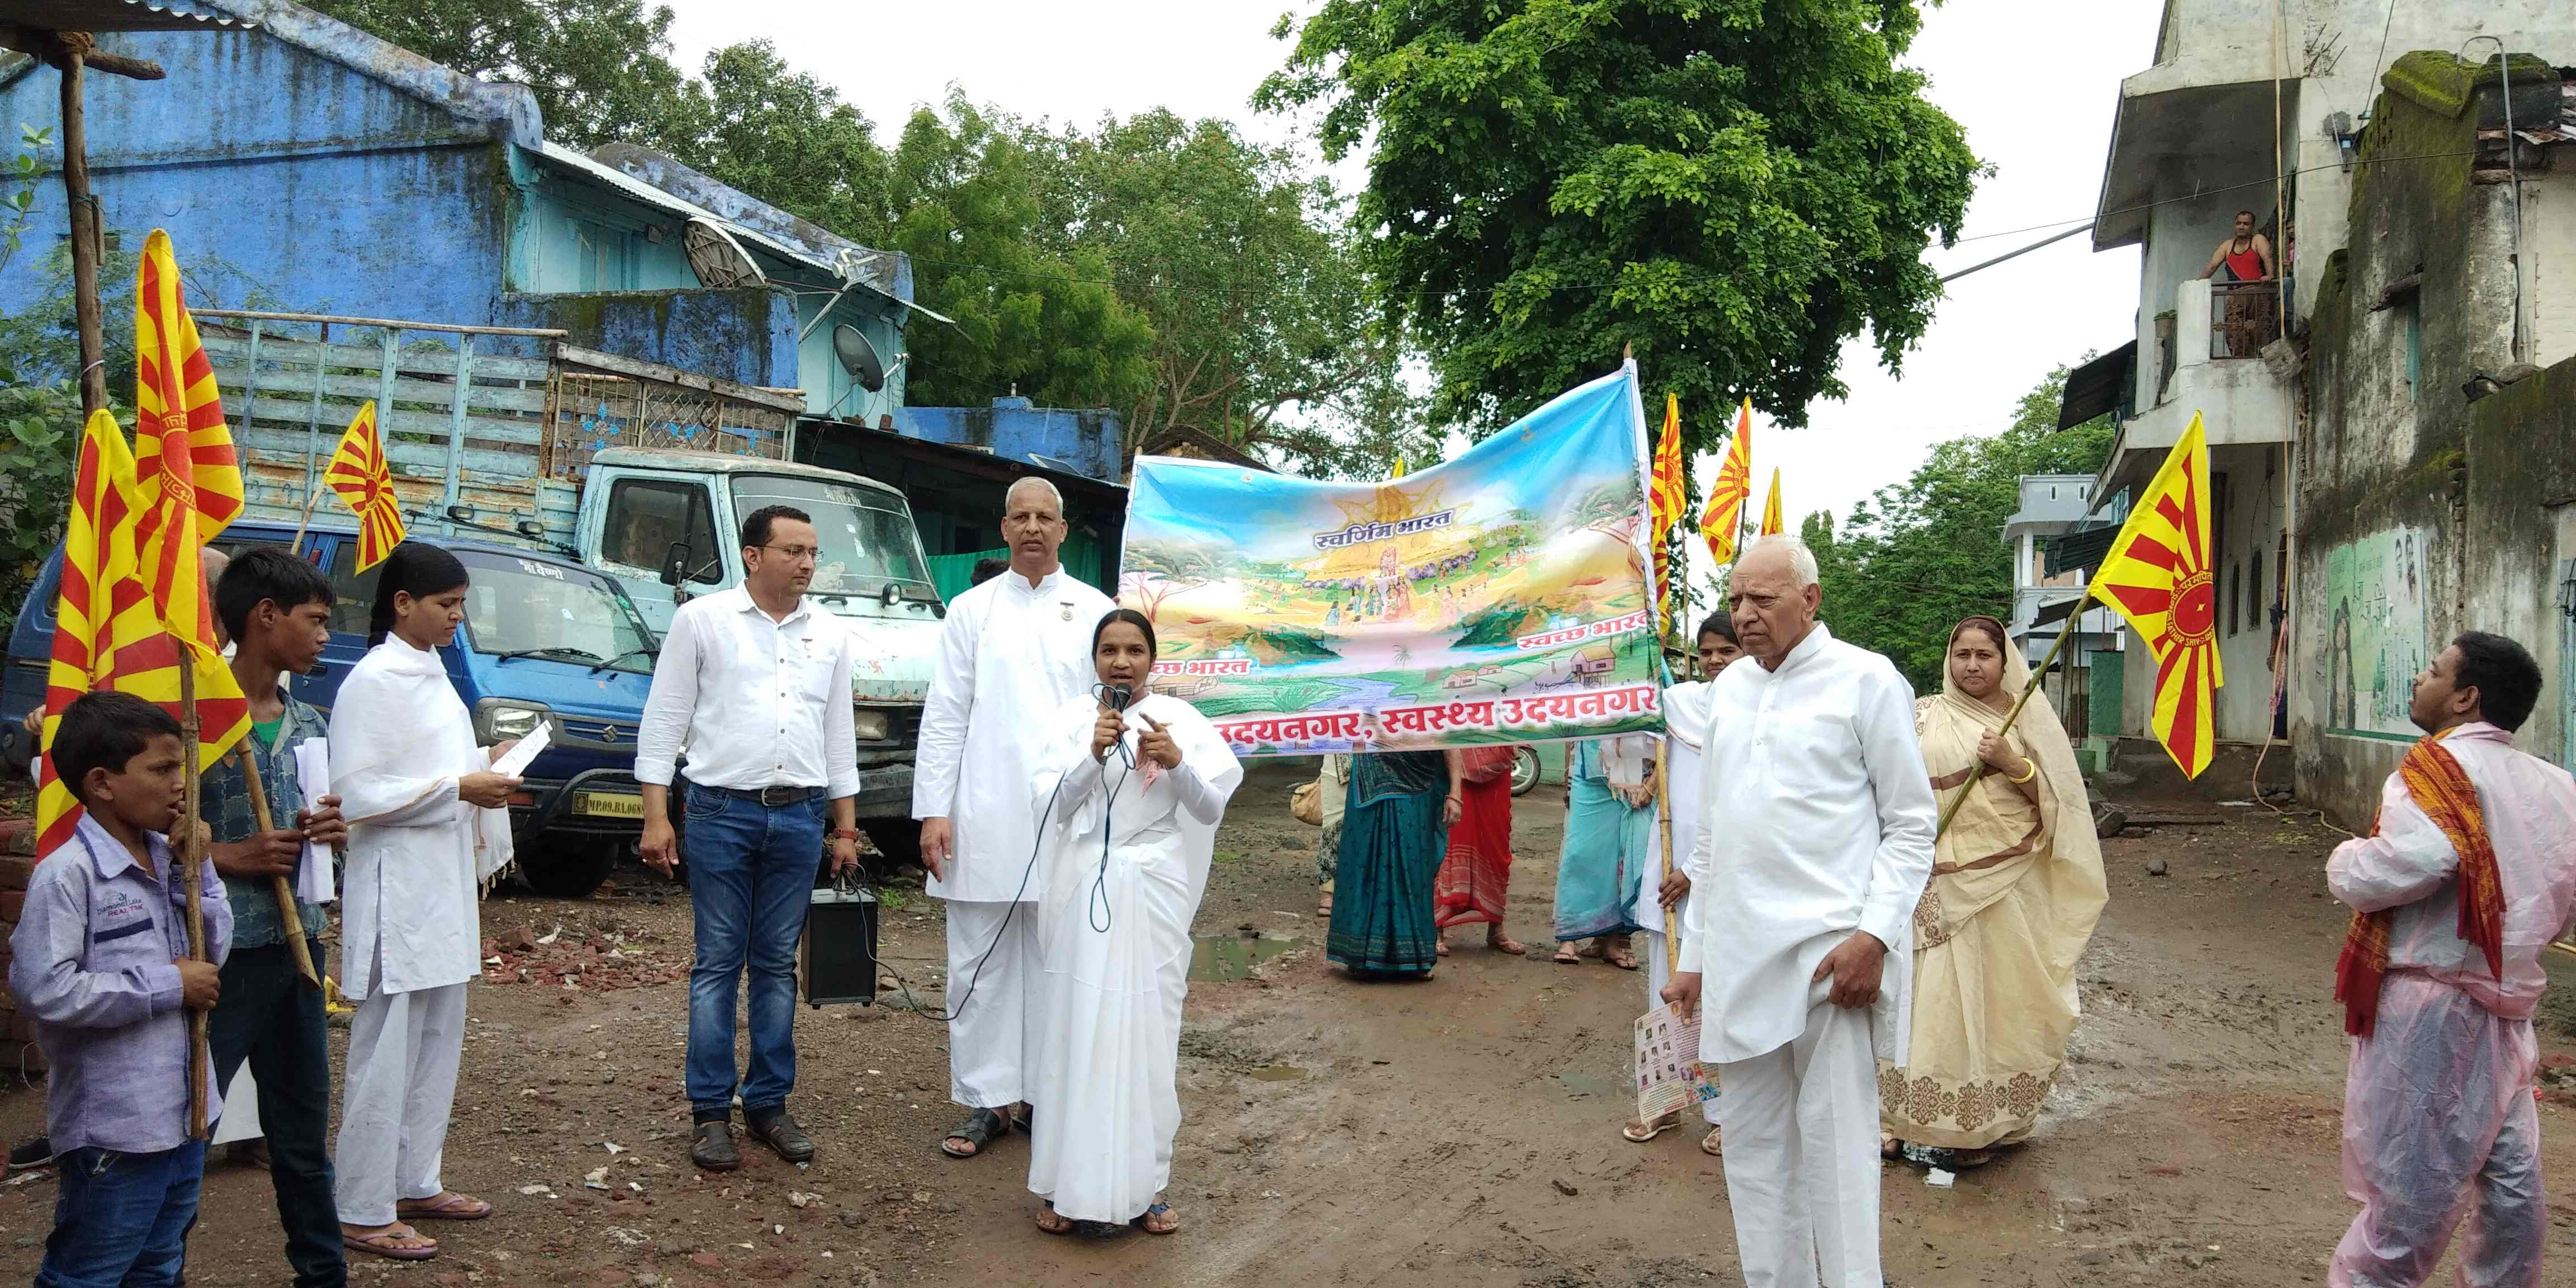 """Rally for """"Clean India, Healthy India"""" by Brahma Kumaris, Indore"""